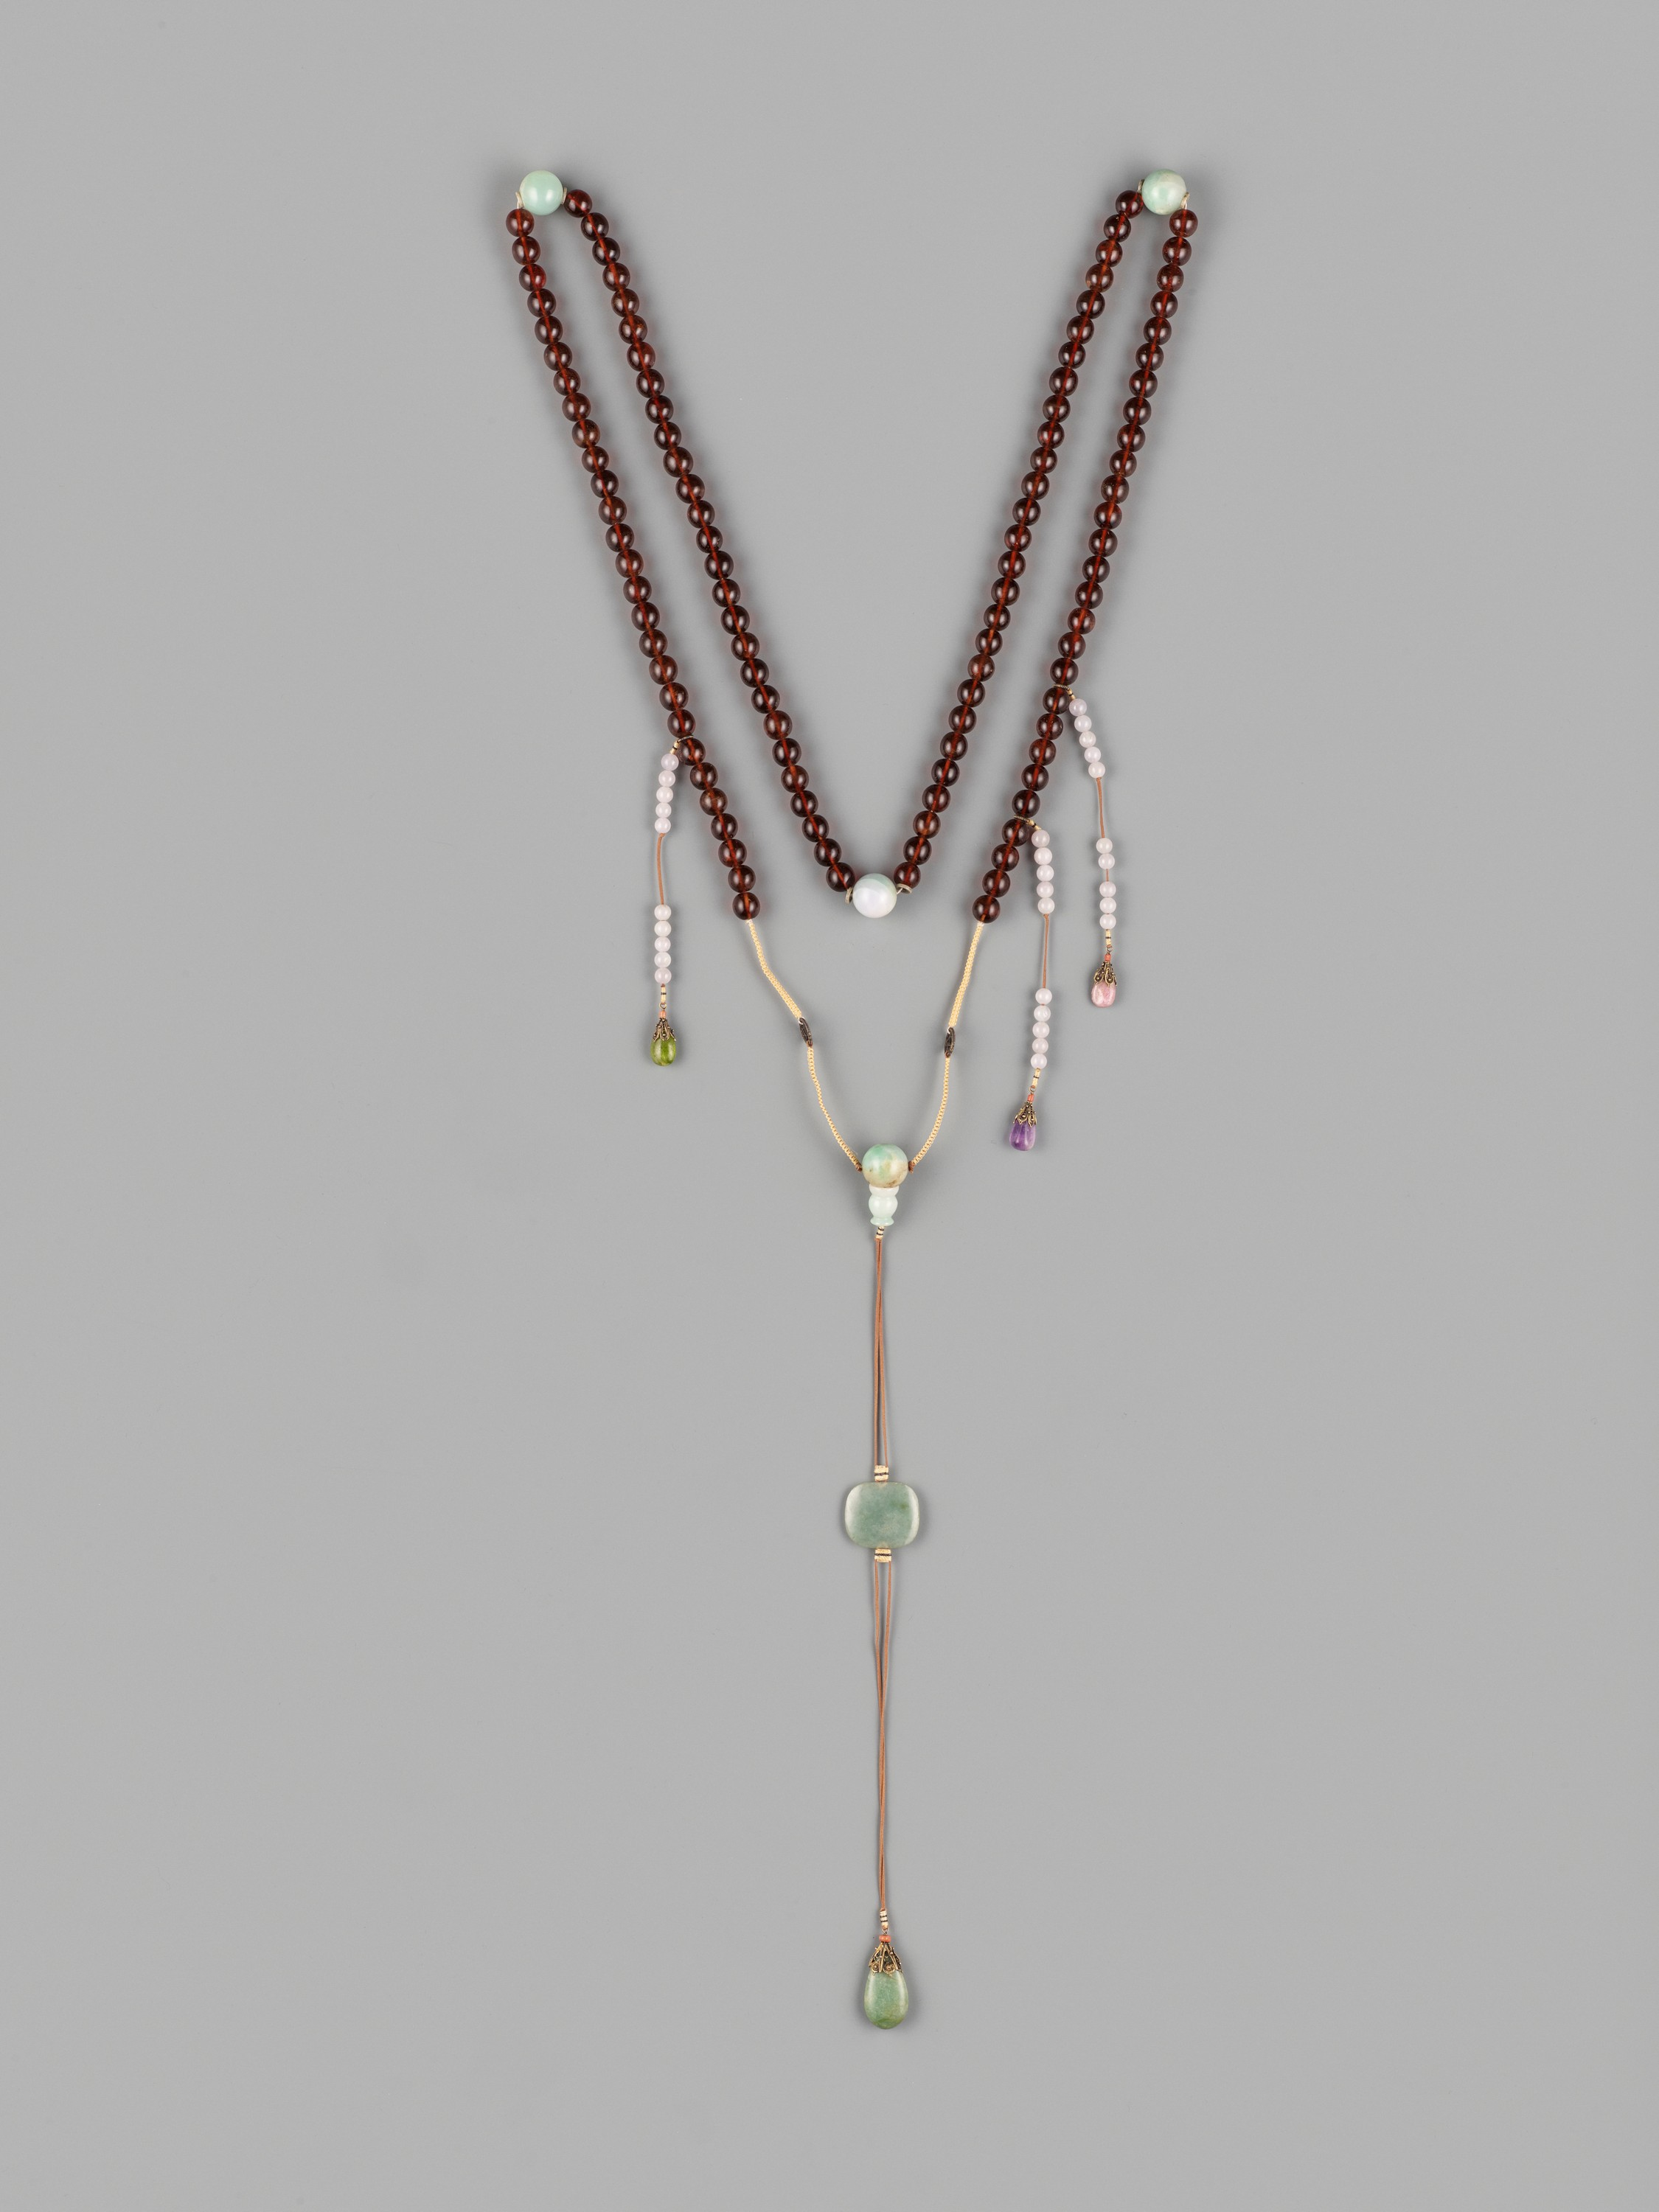 AN AMBER AND JADEITE COURT NECKLACE (CHAO ZHU), QING DYNASTY